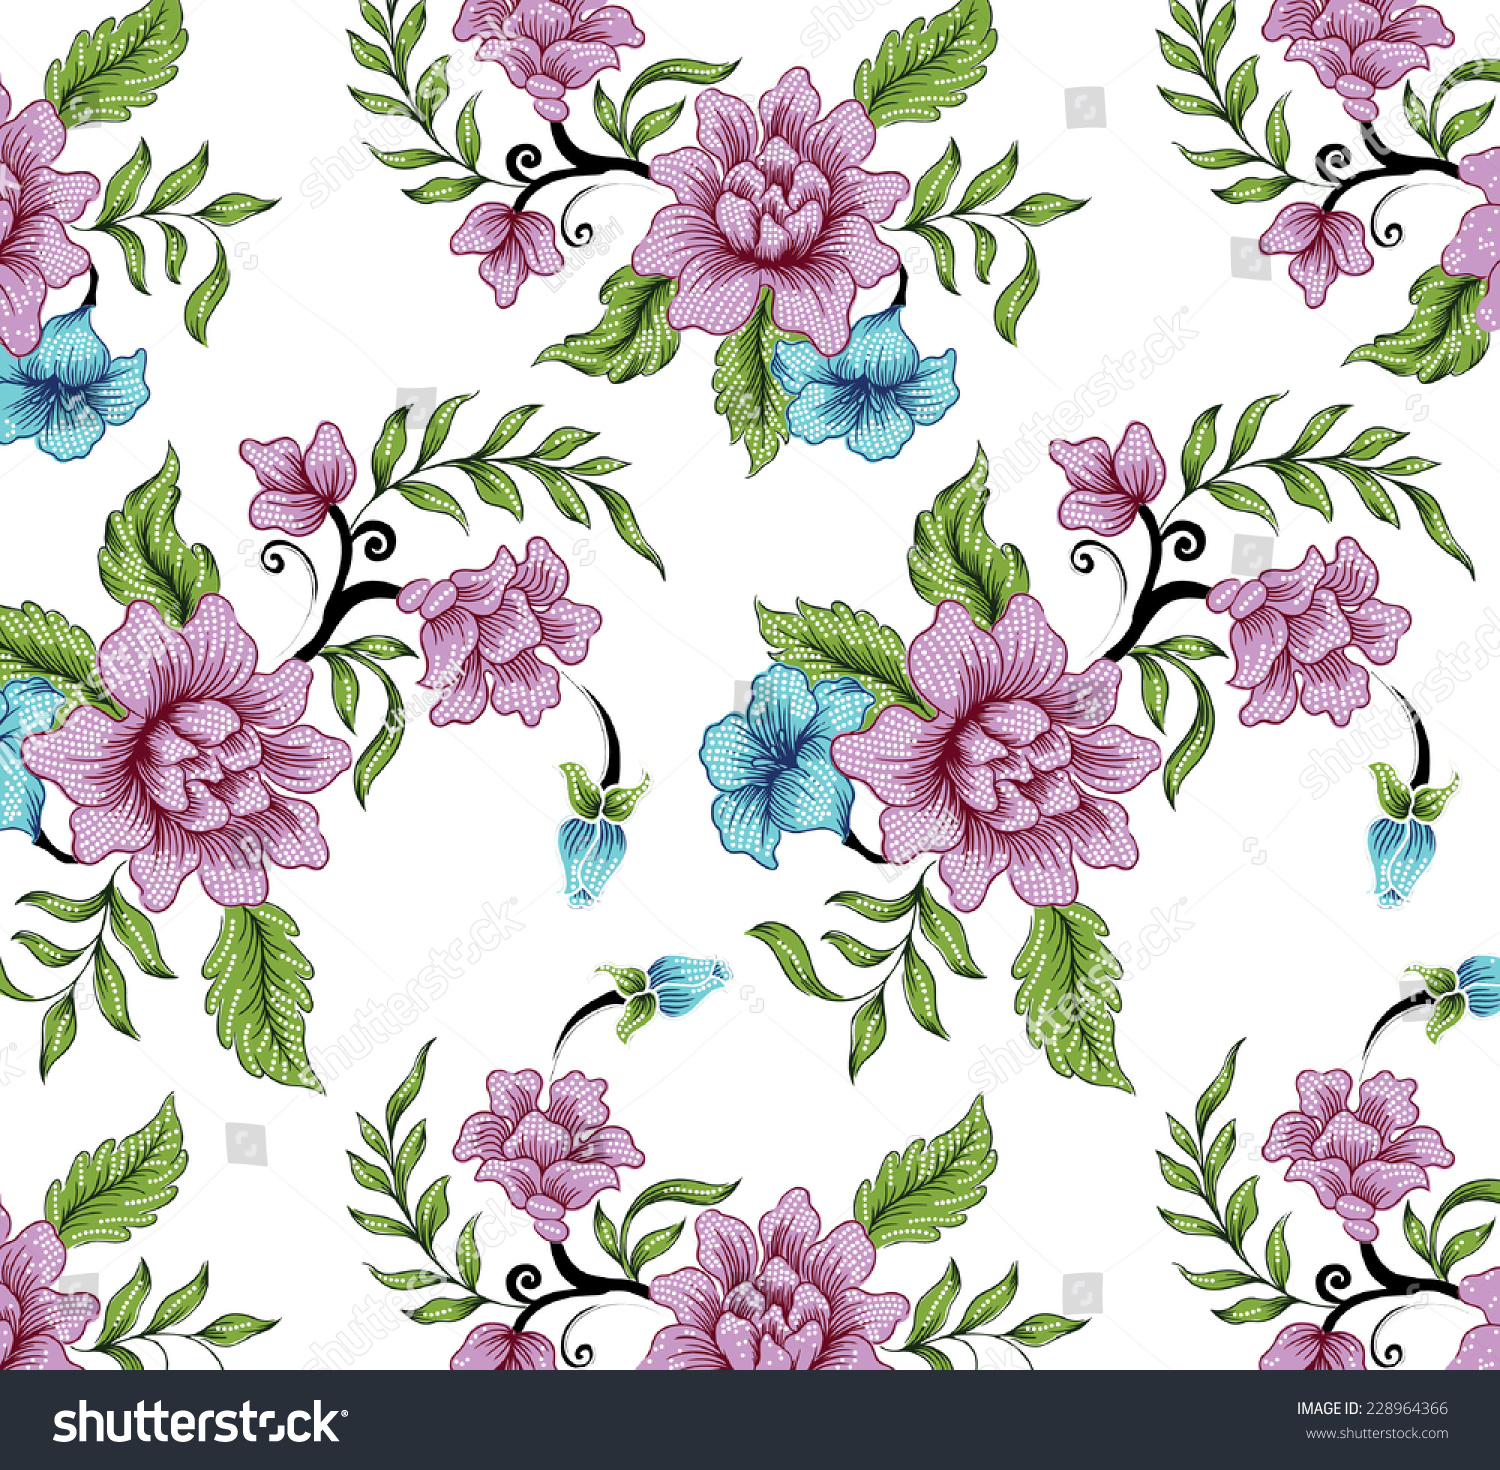 Vector Floral Pattern With Blooming Flowers